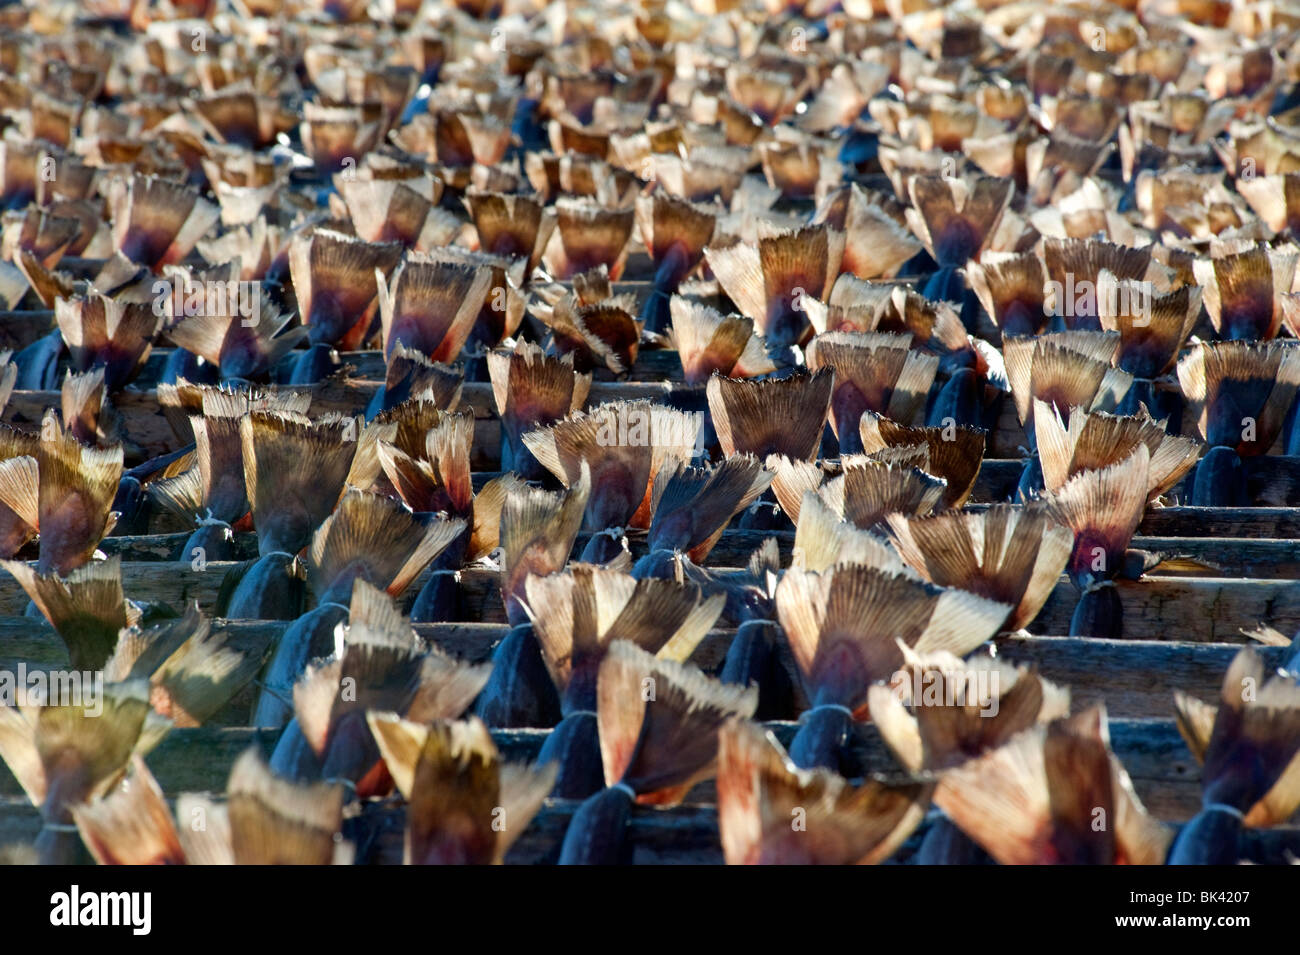 Many cod drying on outdoor racks in Lofoten Islands in Norway - Stock Image